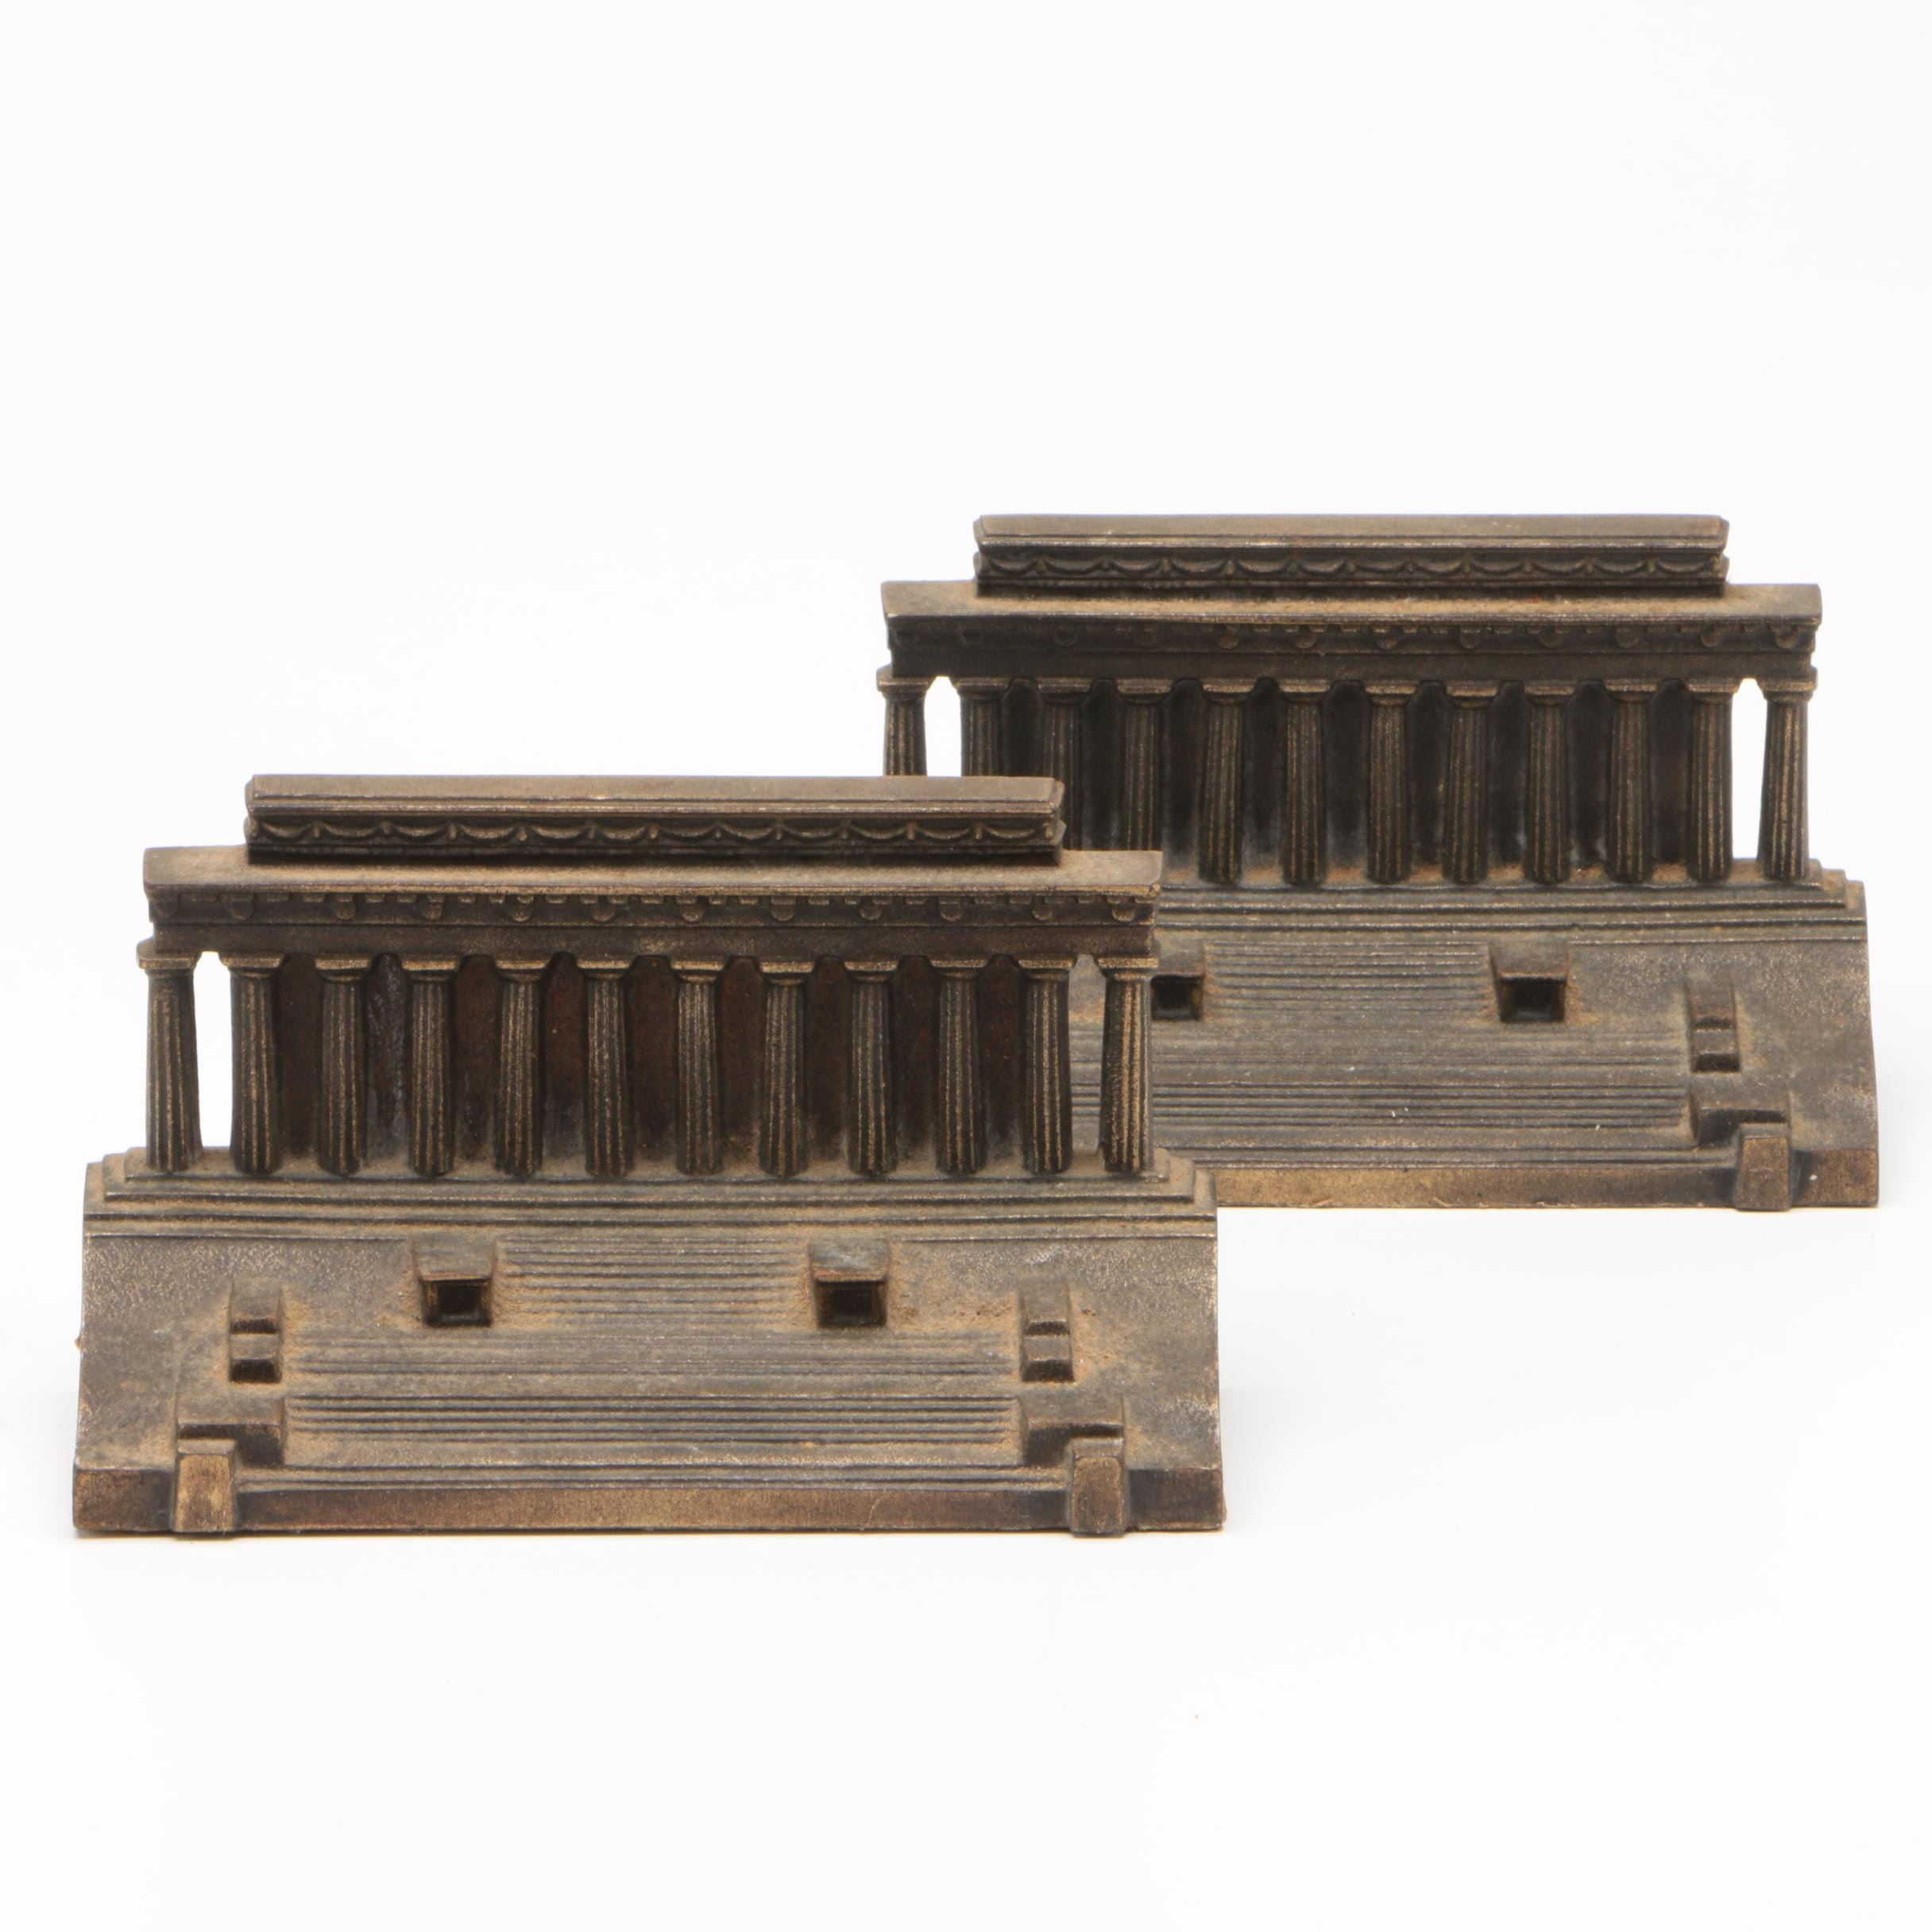 Bradley & Hubbard Lincoln Memorial Bookends, Early 20th Century